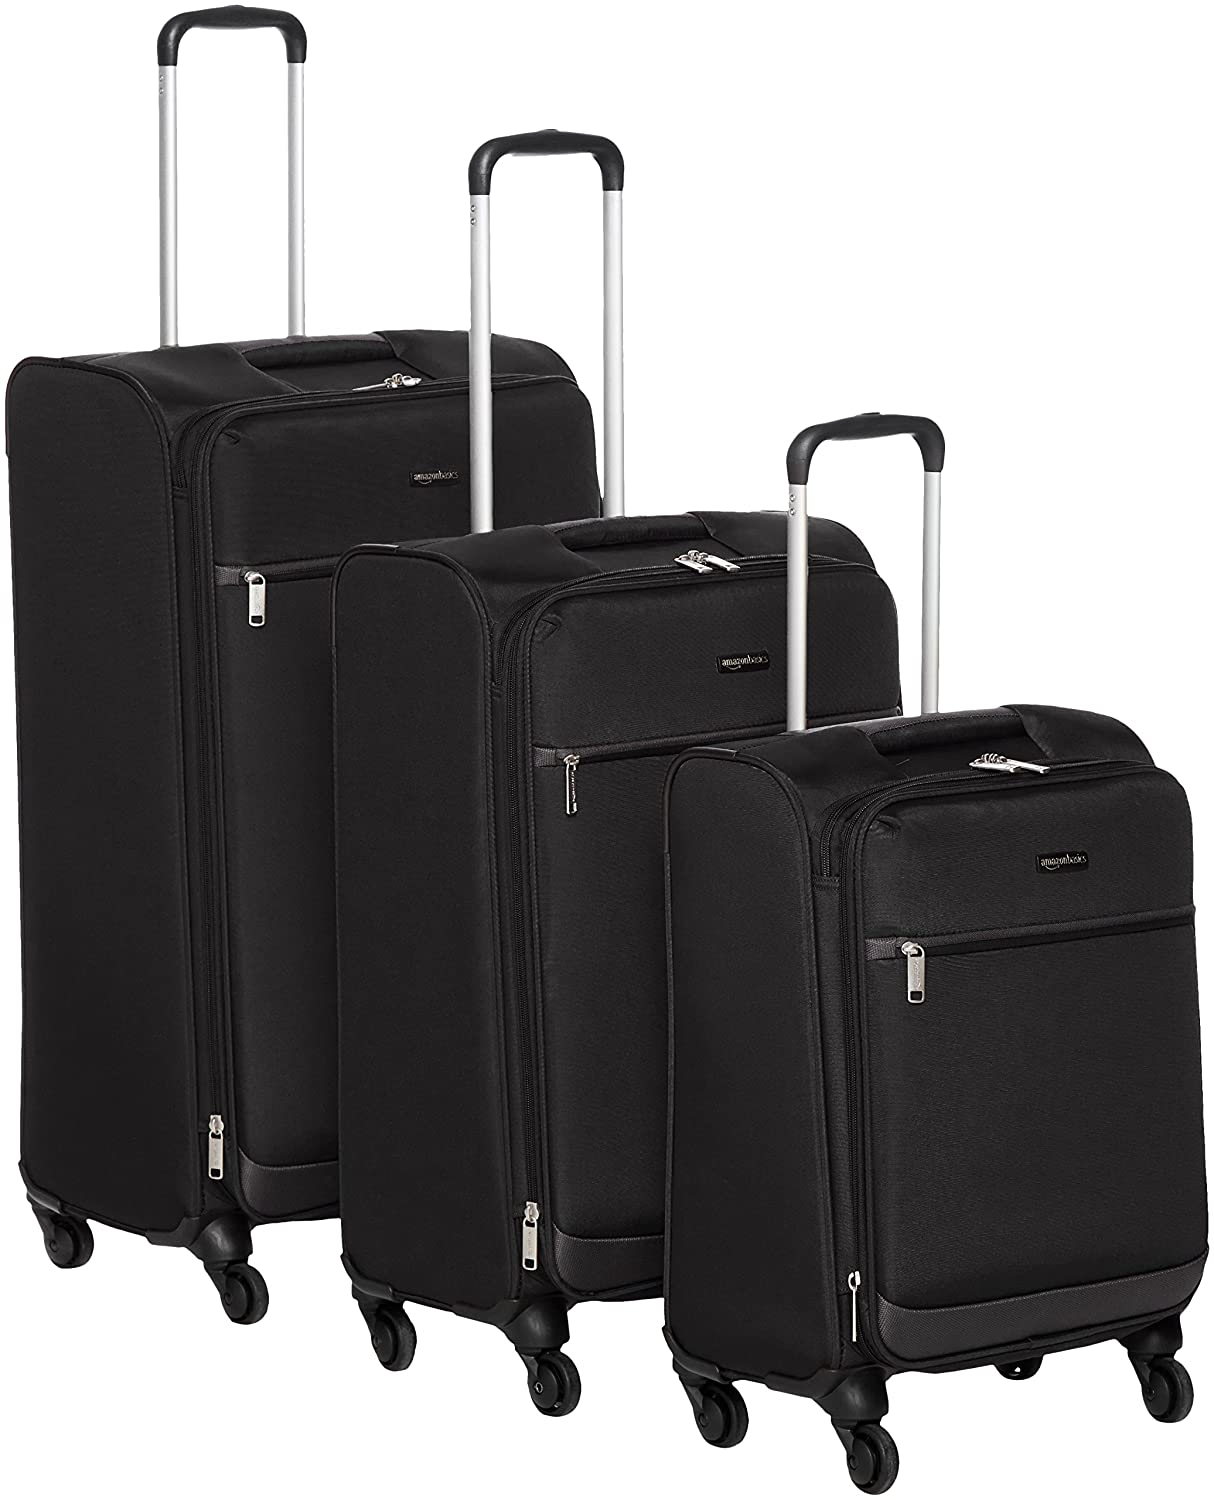 AmazonBasics Softside Suitcase Set with Wheels, 21